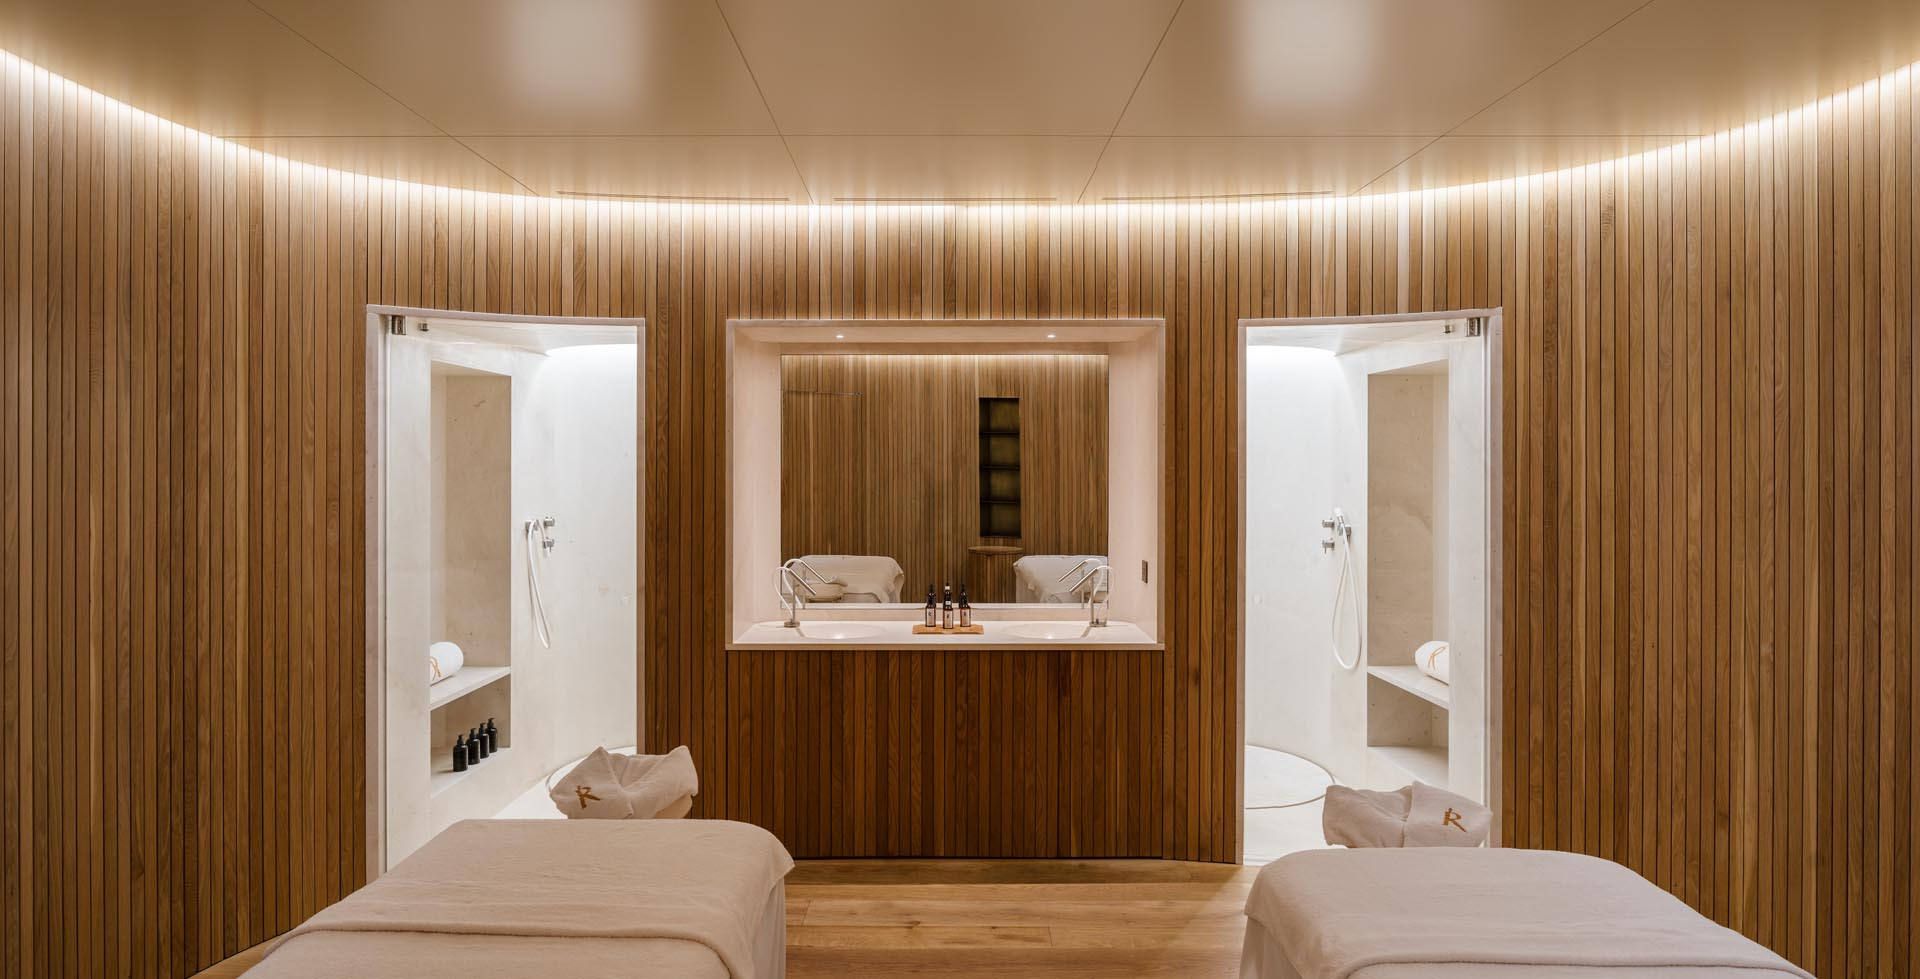 Modern massage rooms with wood slat curved walls and hidden lighting.